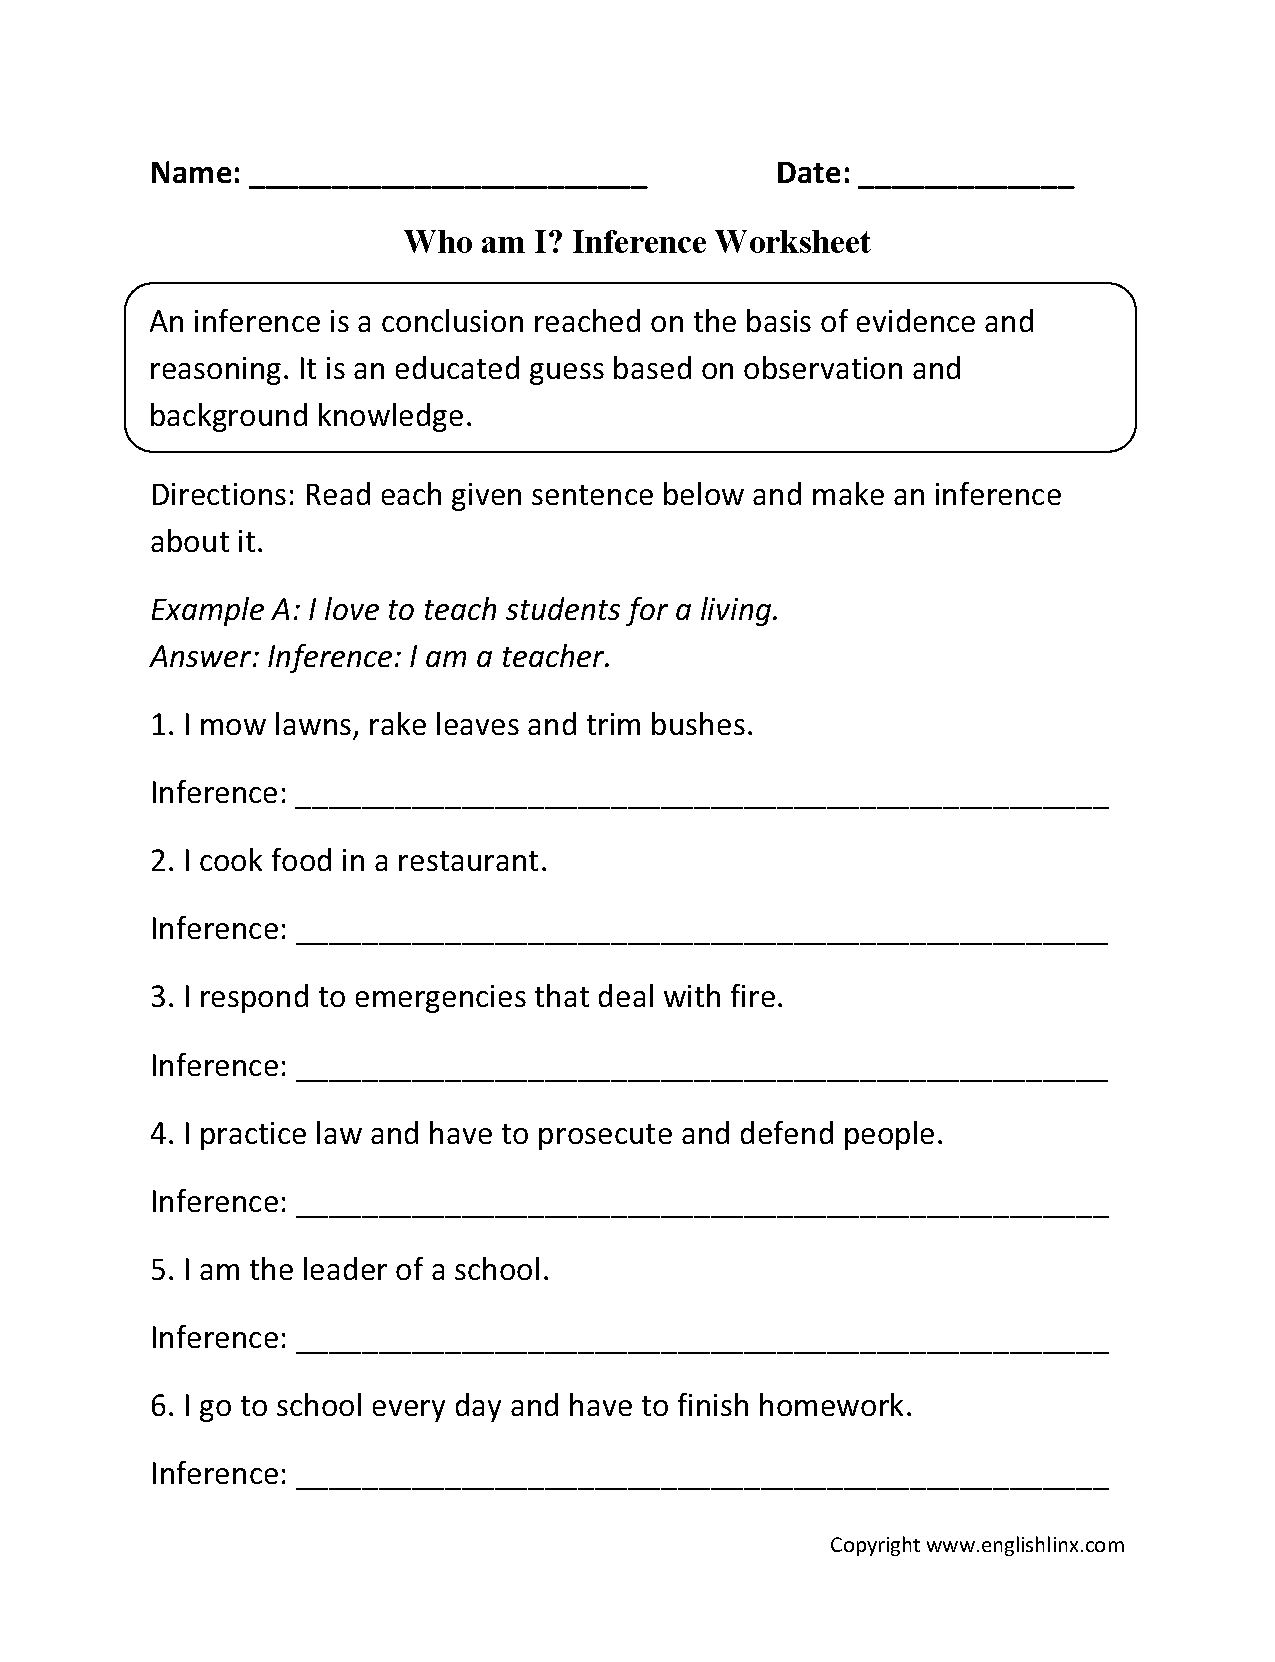 Who Am I Inference Worksheets Inference Lessons Pinterest